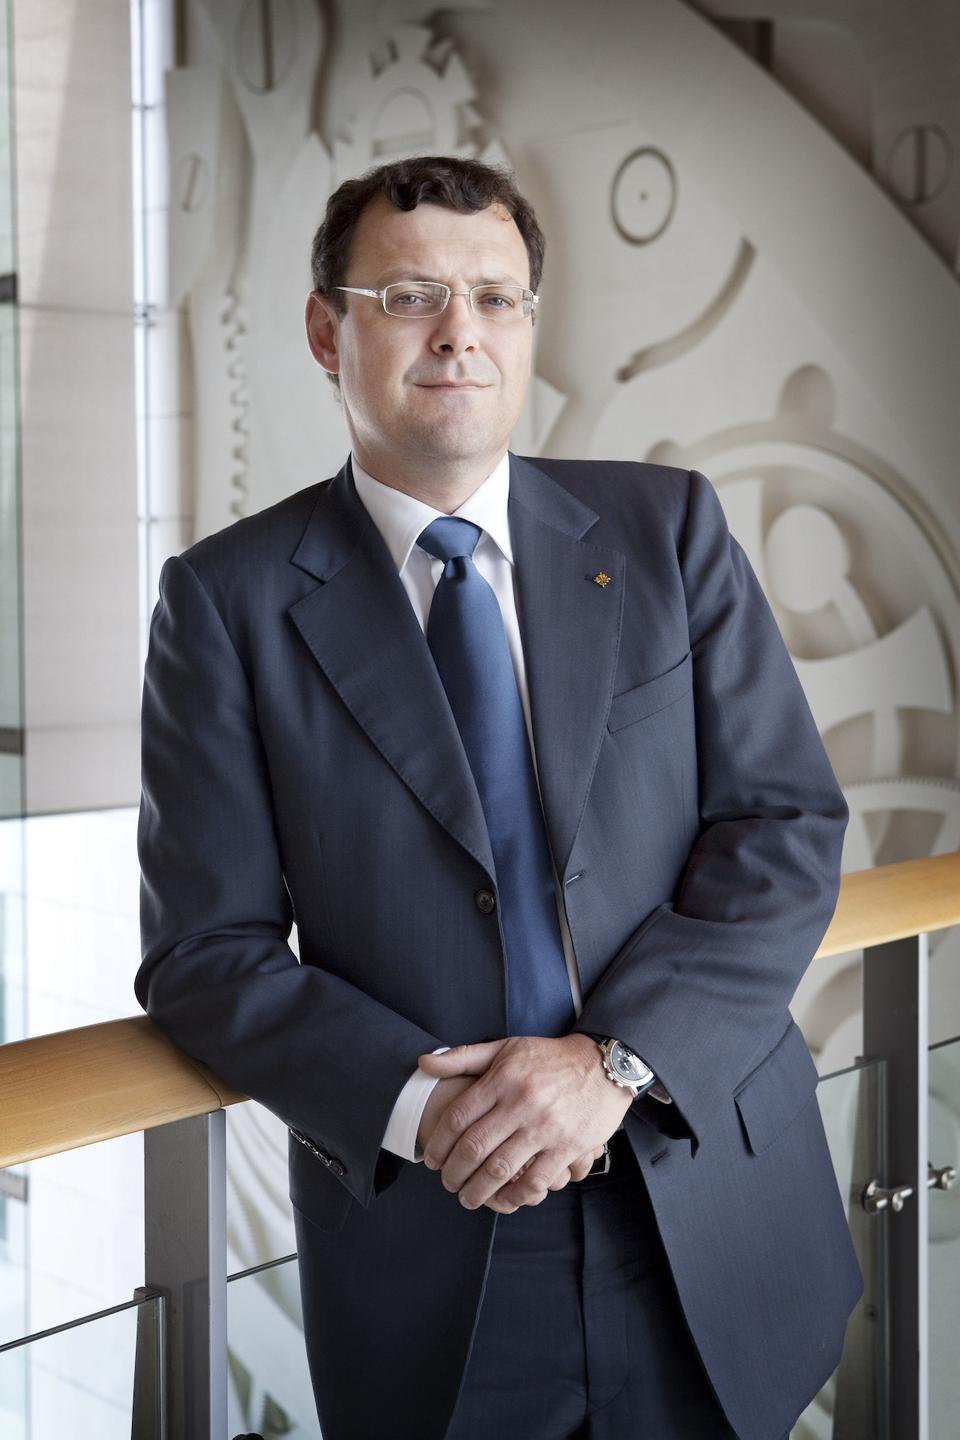 Thierry Stern, CEO of Patek Philippe